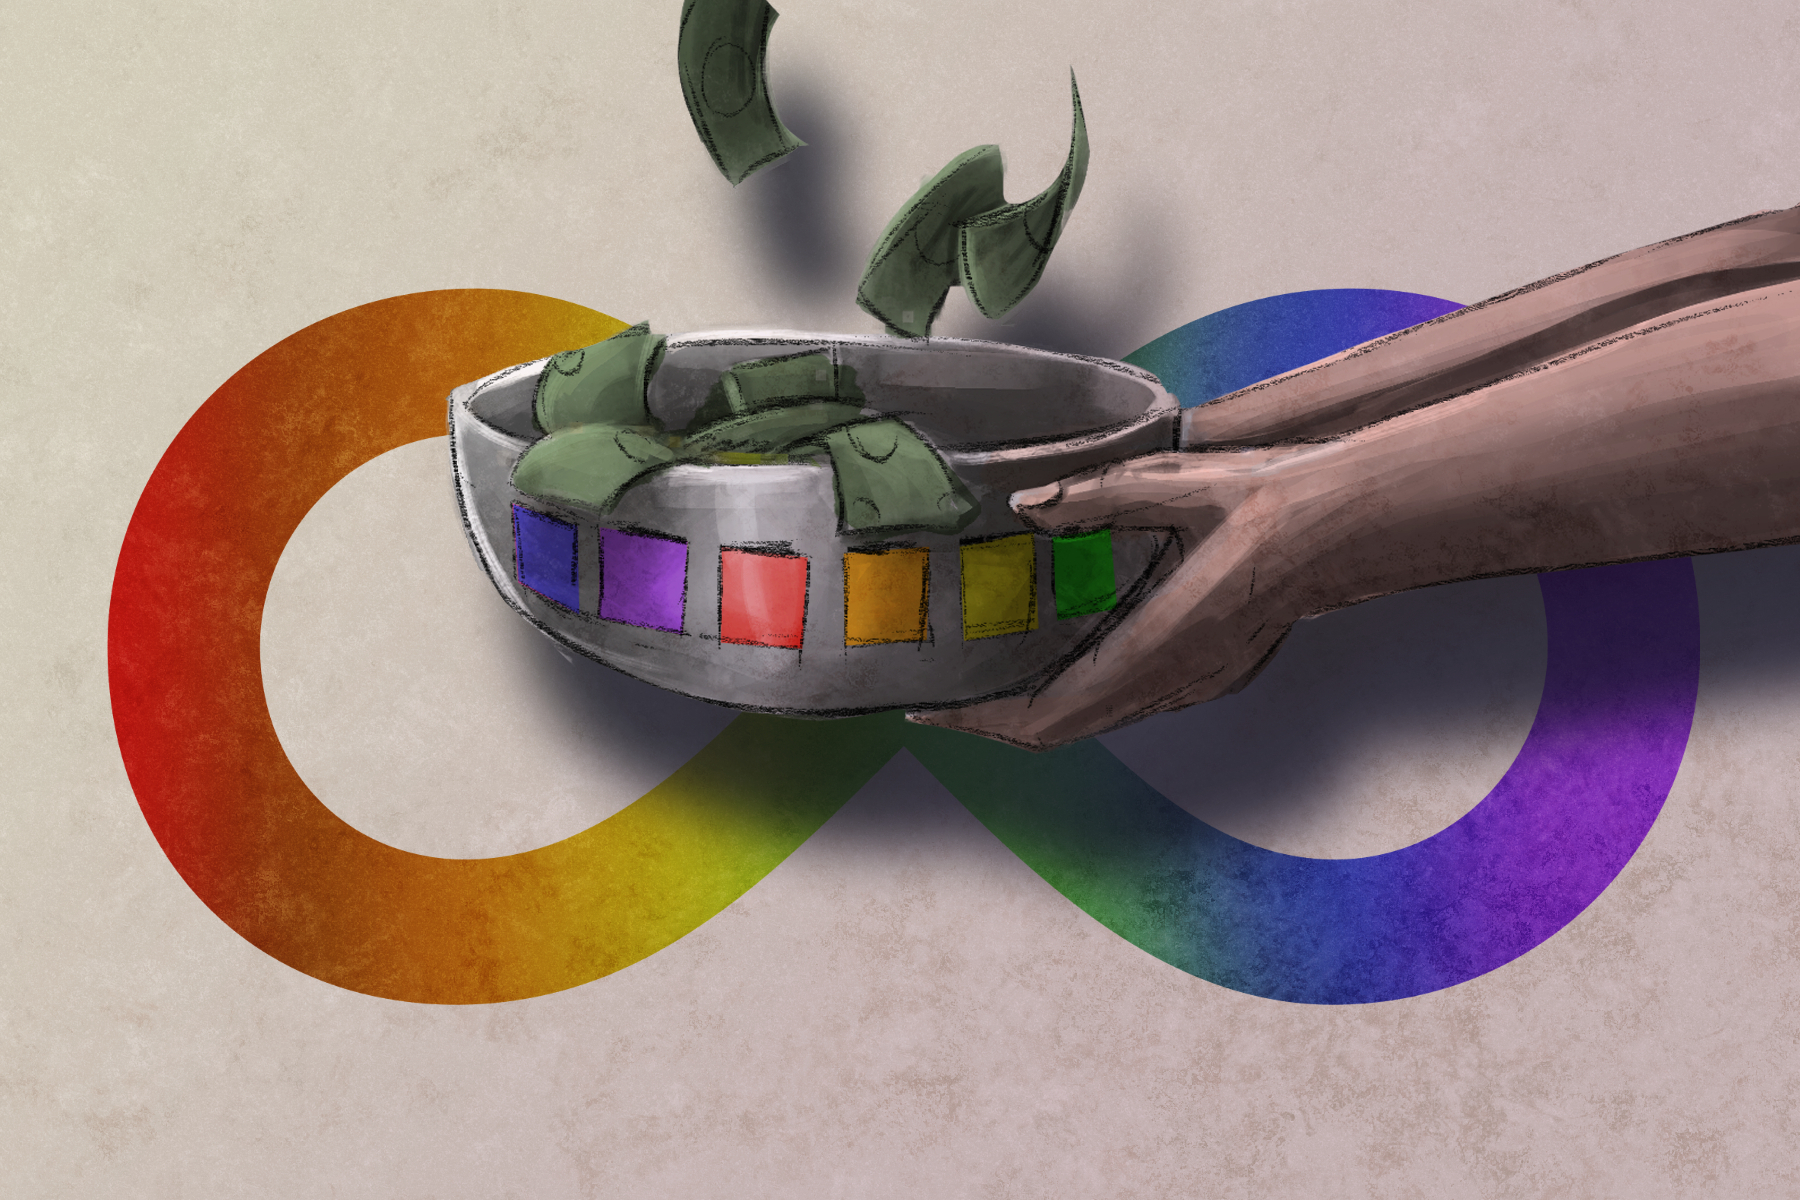 In an article about Mark Rober, an illustration of a person holding a bowl filled with money in front of a rainbow infinity sign.